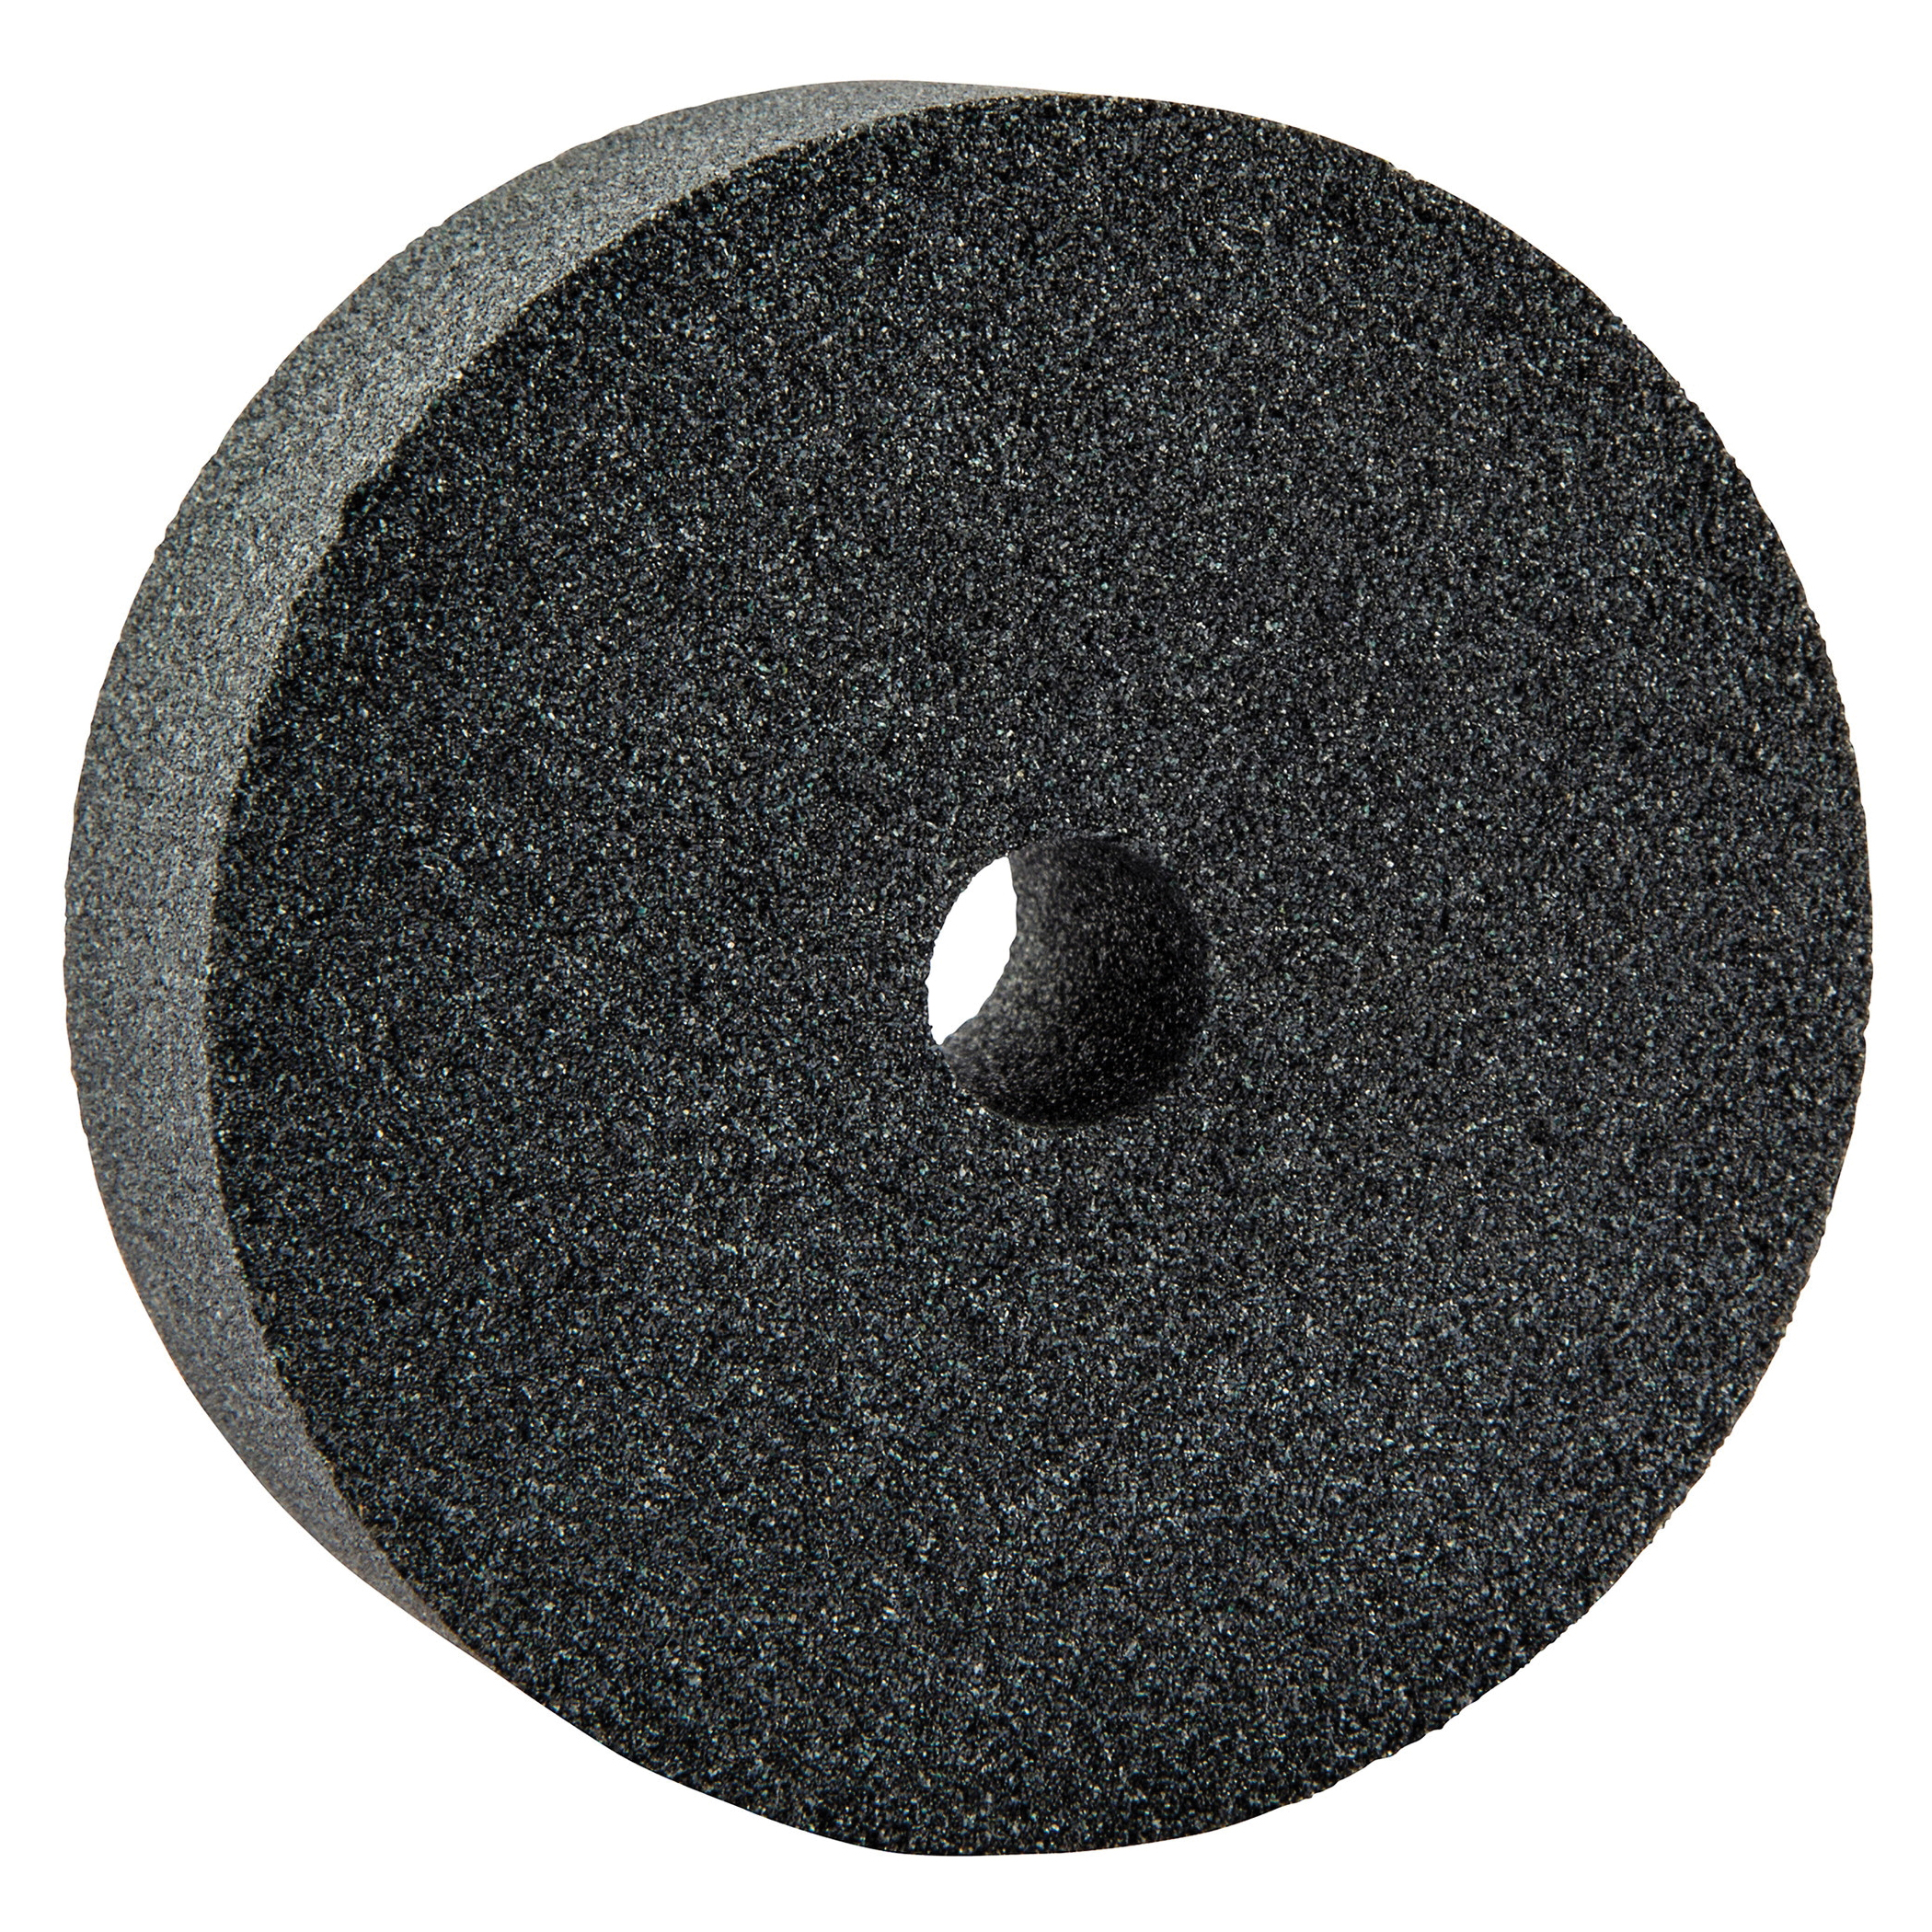 Norton® 66243529170 37C Straight Dressing Wheel, 3 in Dia x 1 in THK, 1/2 in Center Hole, 80 Grit, Silicon Carbide Abrasive